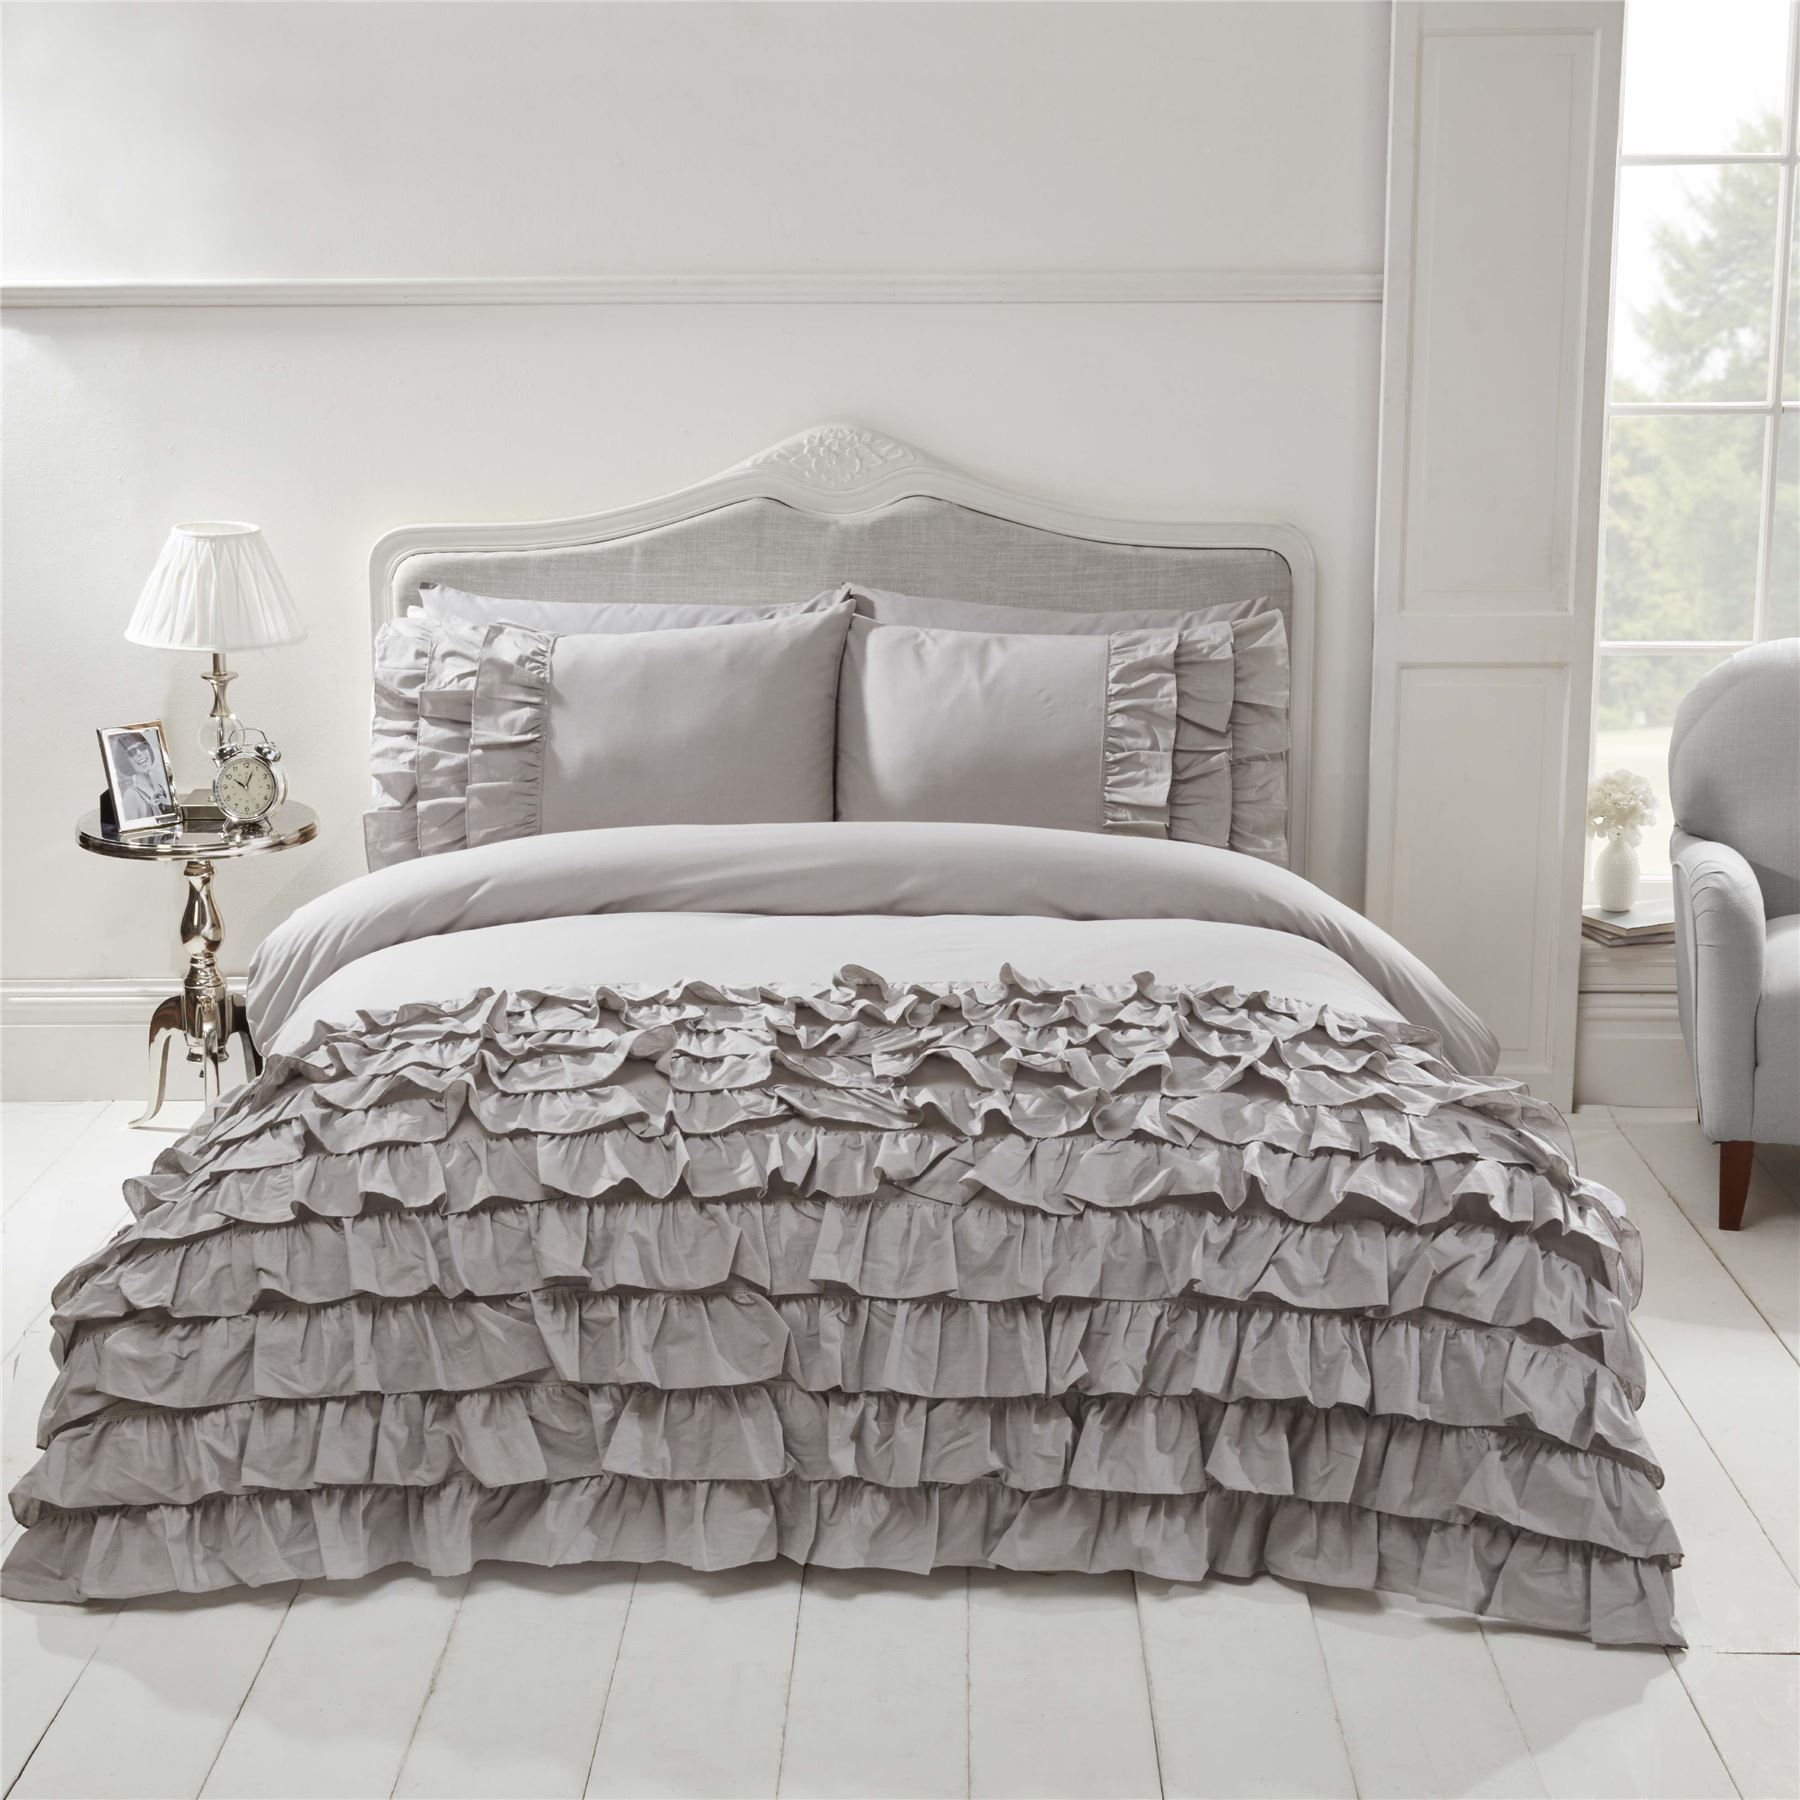 grey scheme davies sah bed bedding ideas white calm claire bedroom decorating and colour